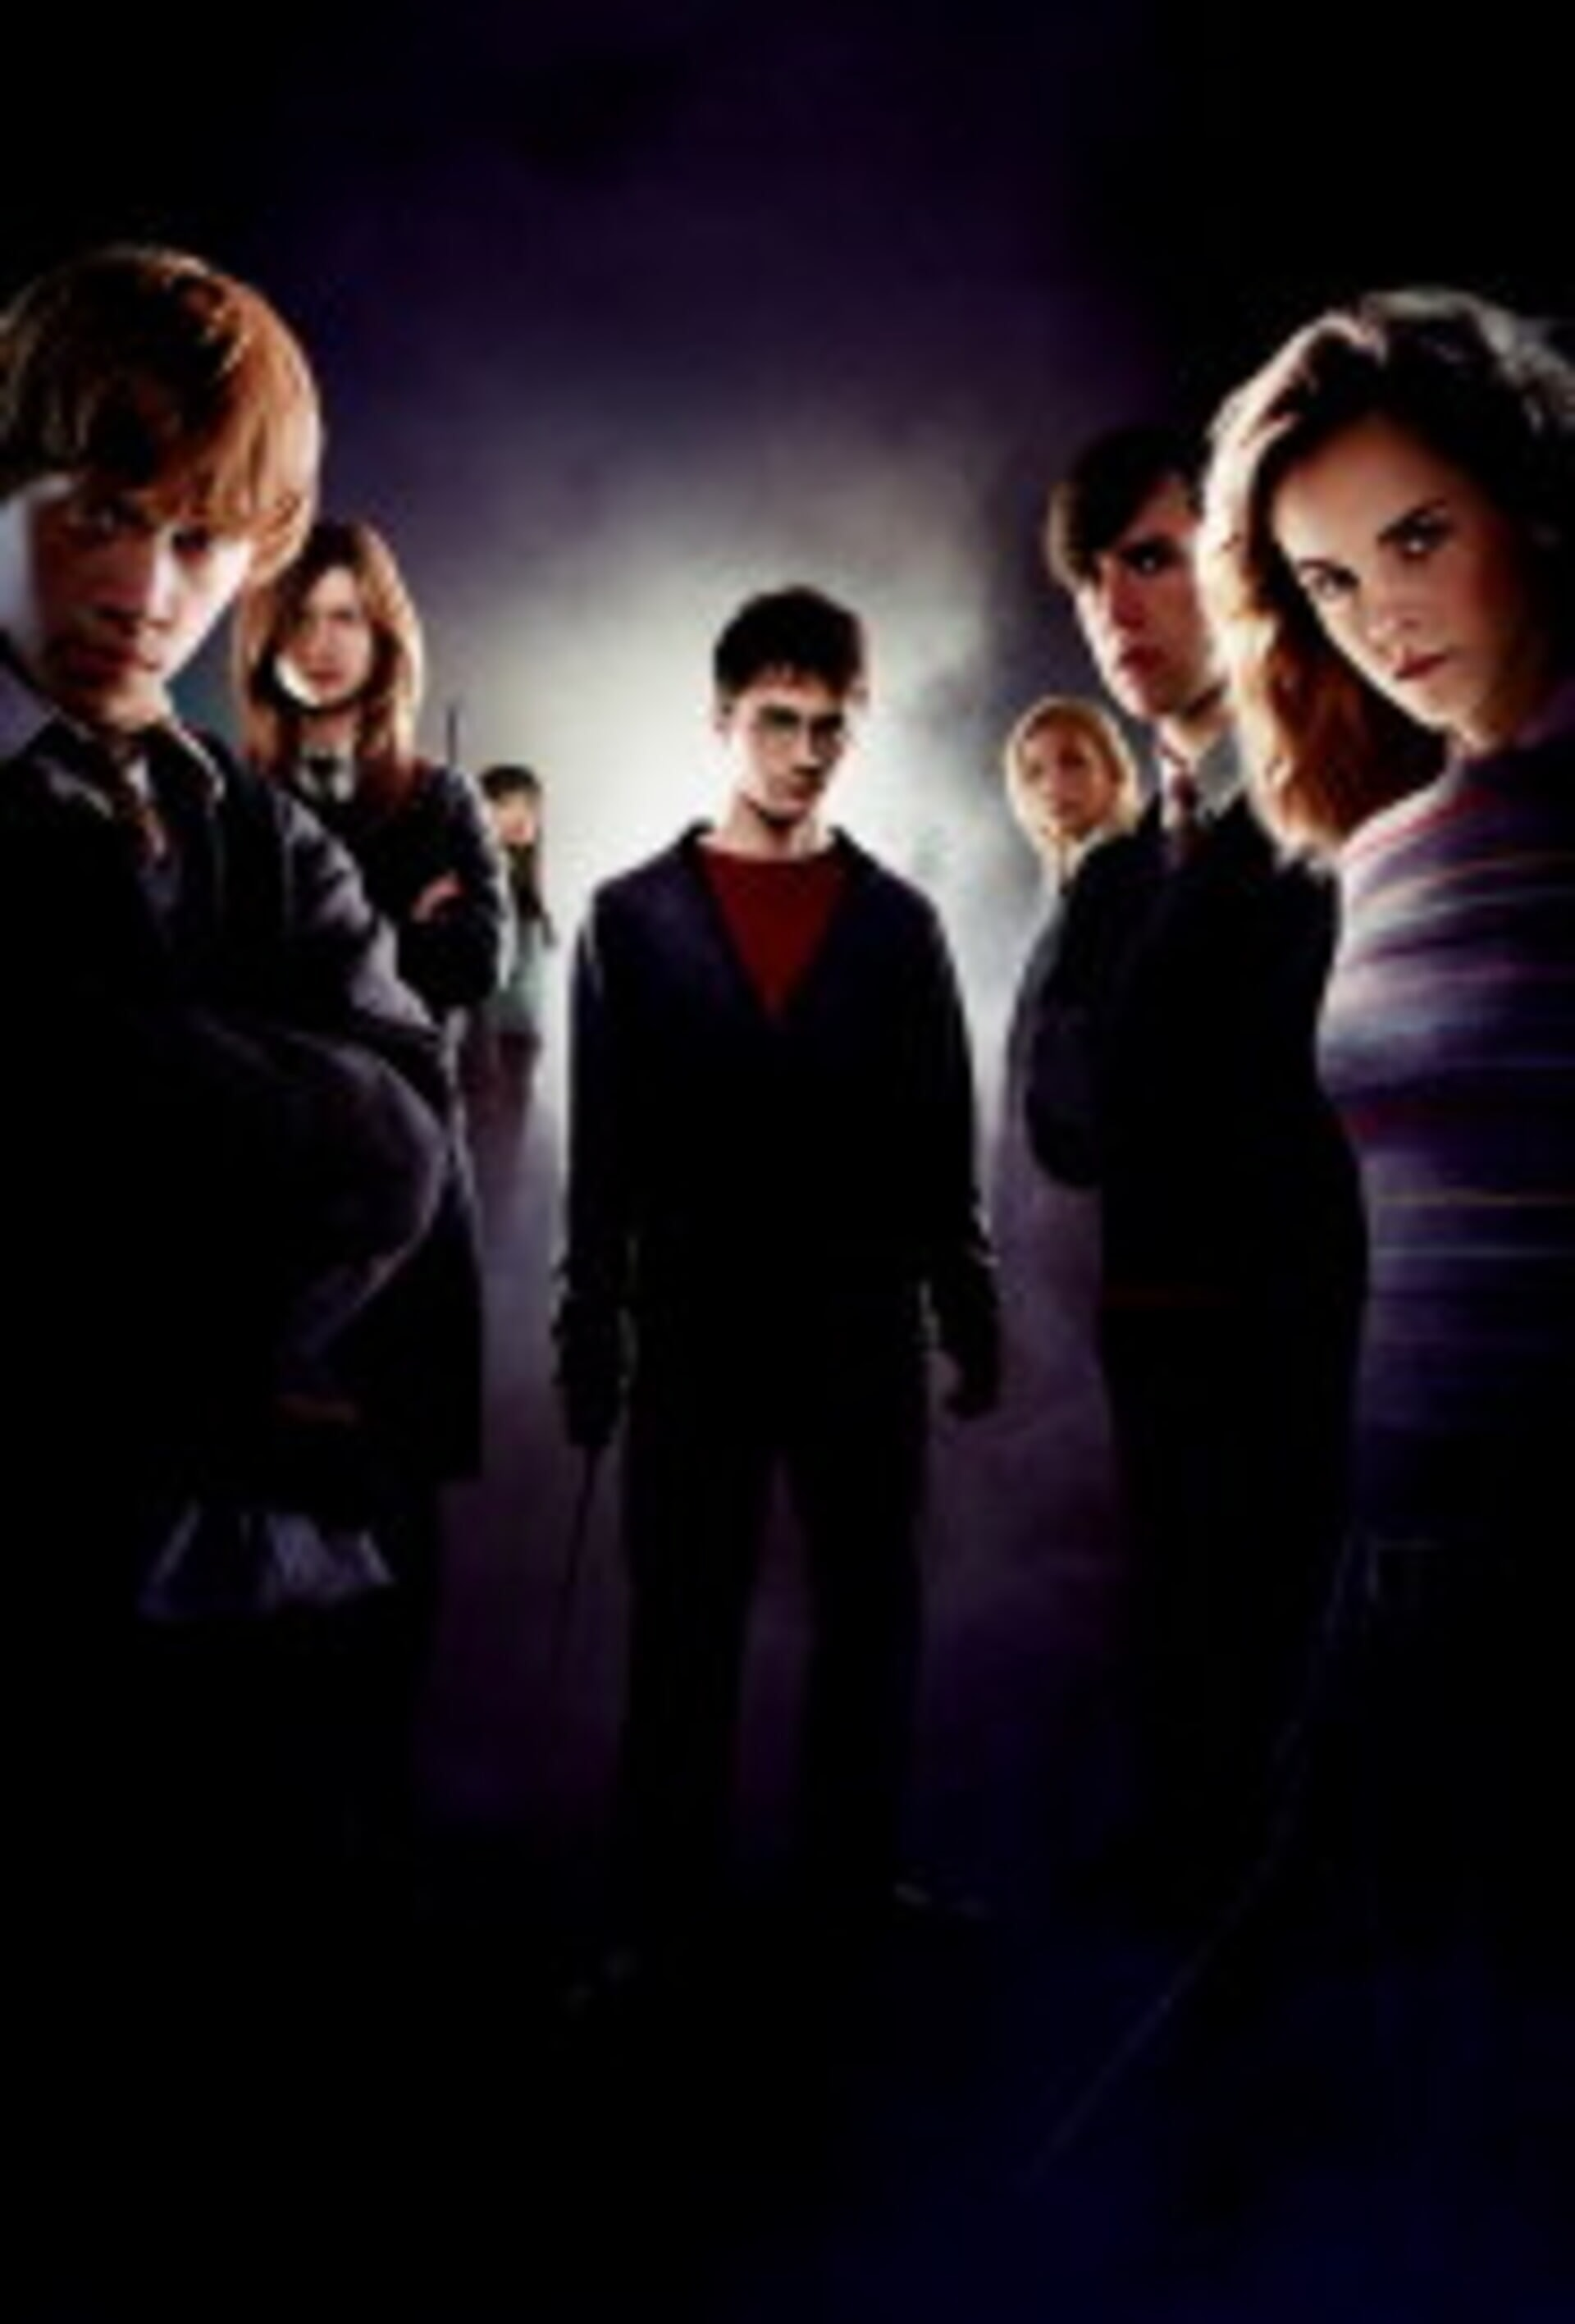 Harry Potter and the Order of the Phoenix - Image 13